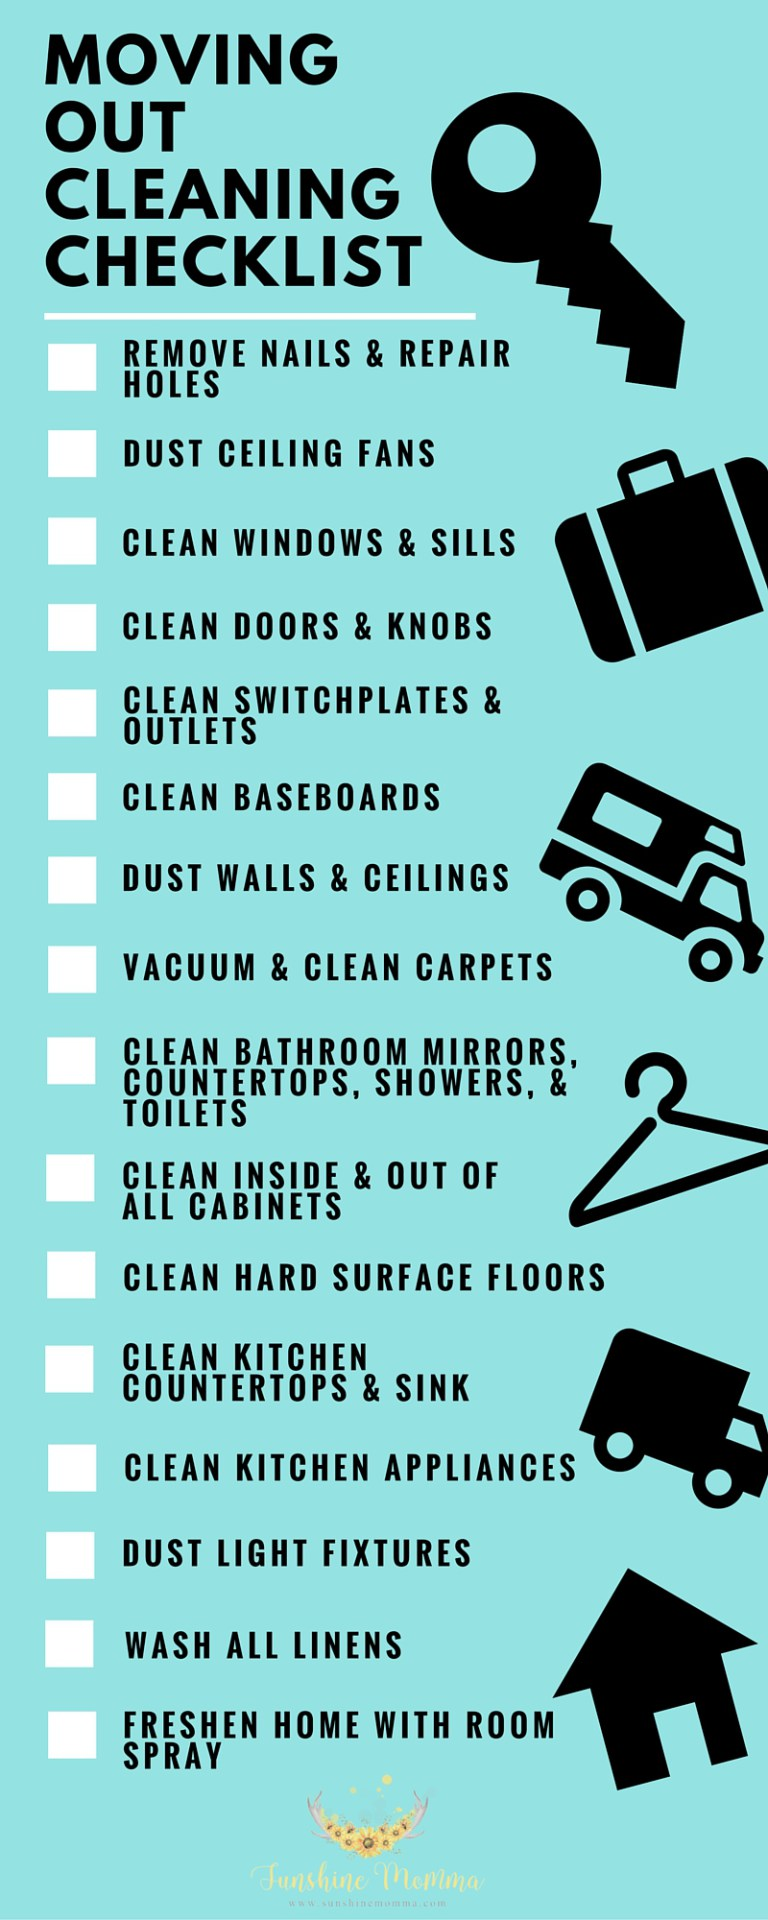 How To Move Out Without Damage Charges :: Eastern Property Management